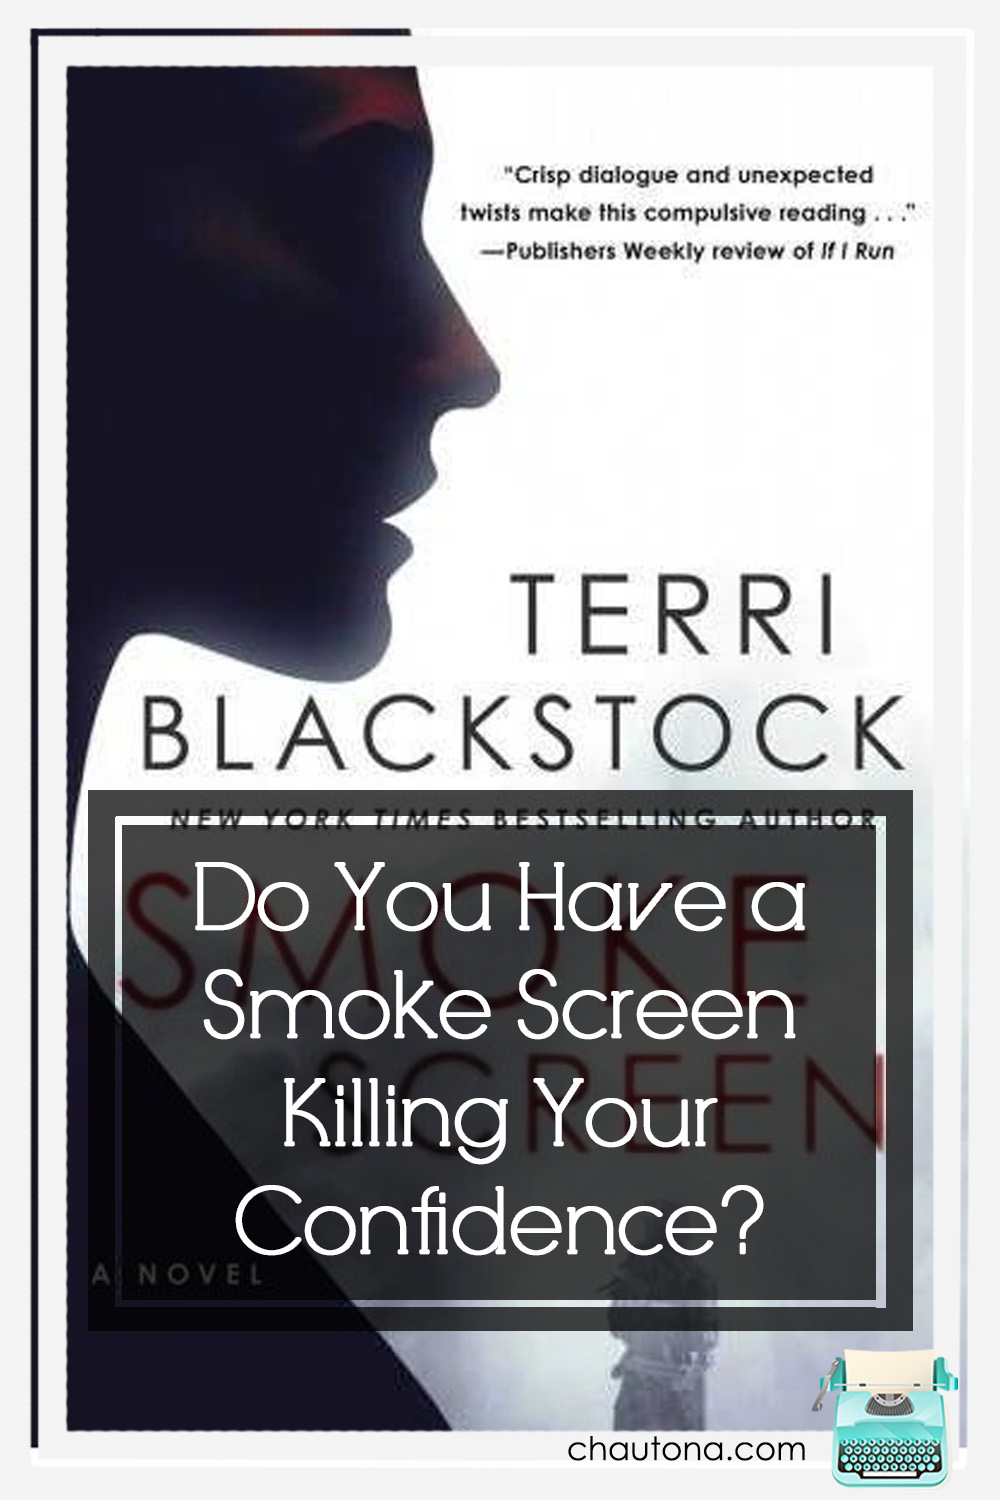 If you're ready for an exciting, engaging, and action-packed novel, Terri Blackstock's Smoke Screen is a great read. Just be ready not to put it down! via @chautonahavig